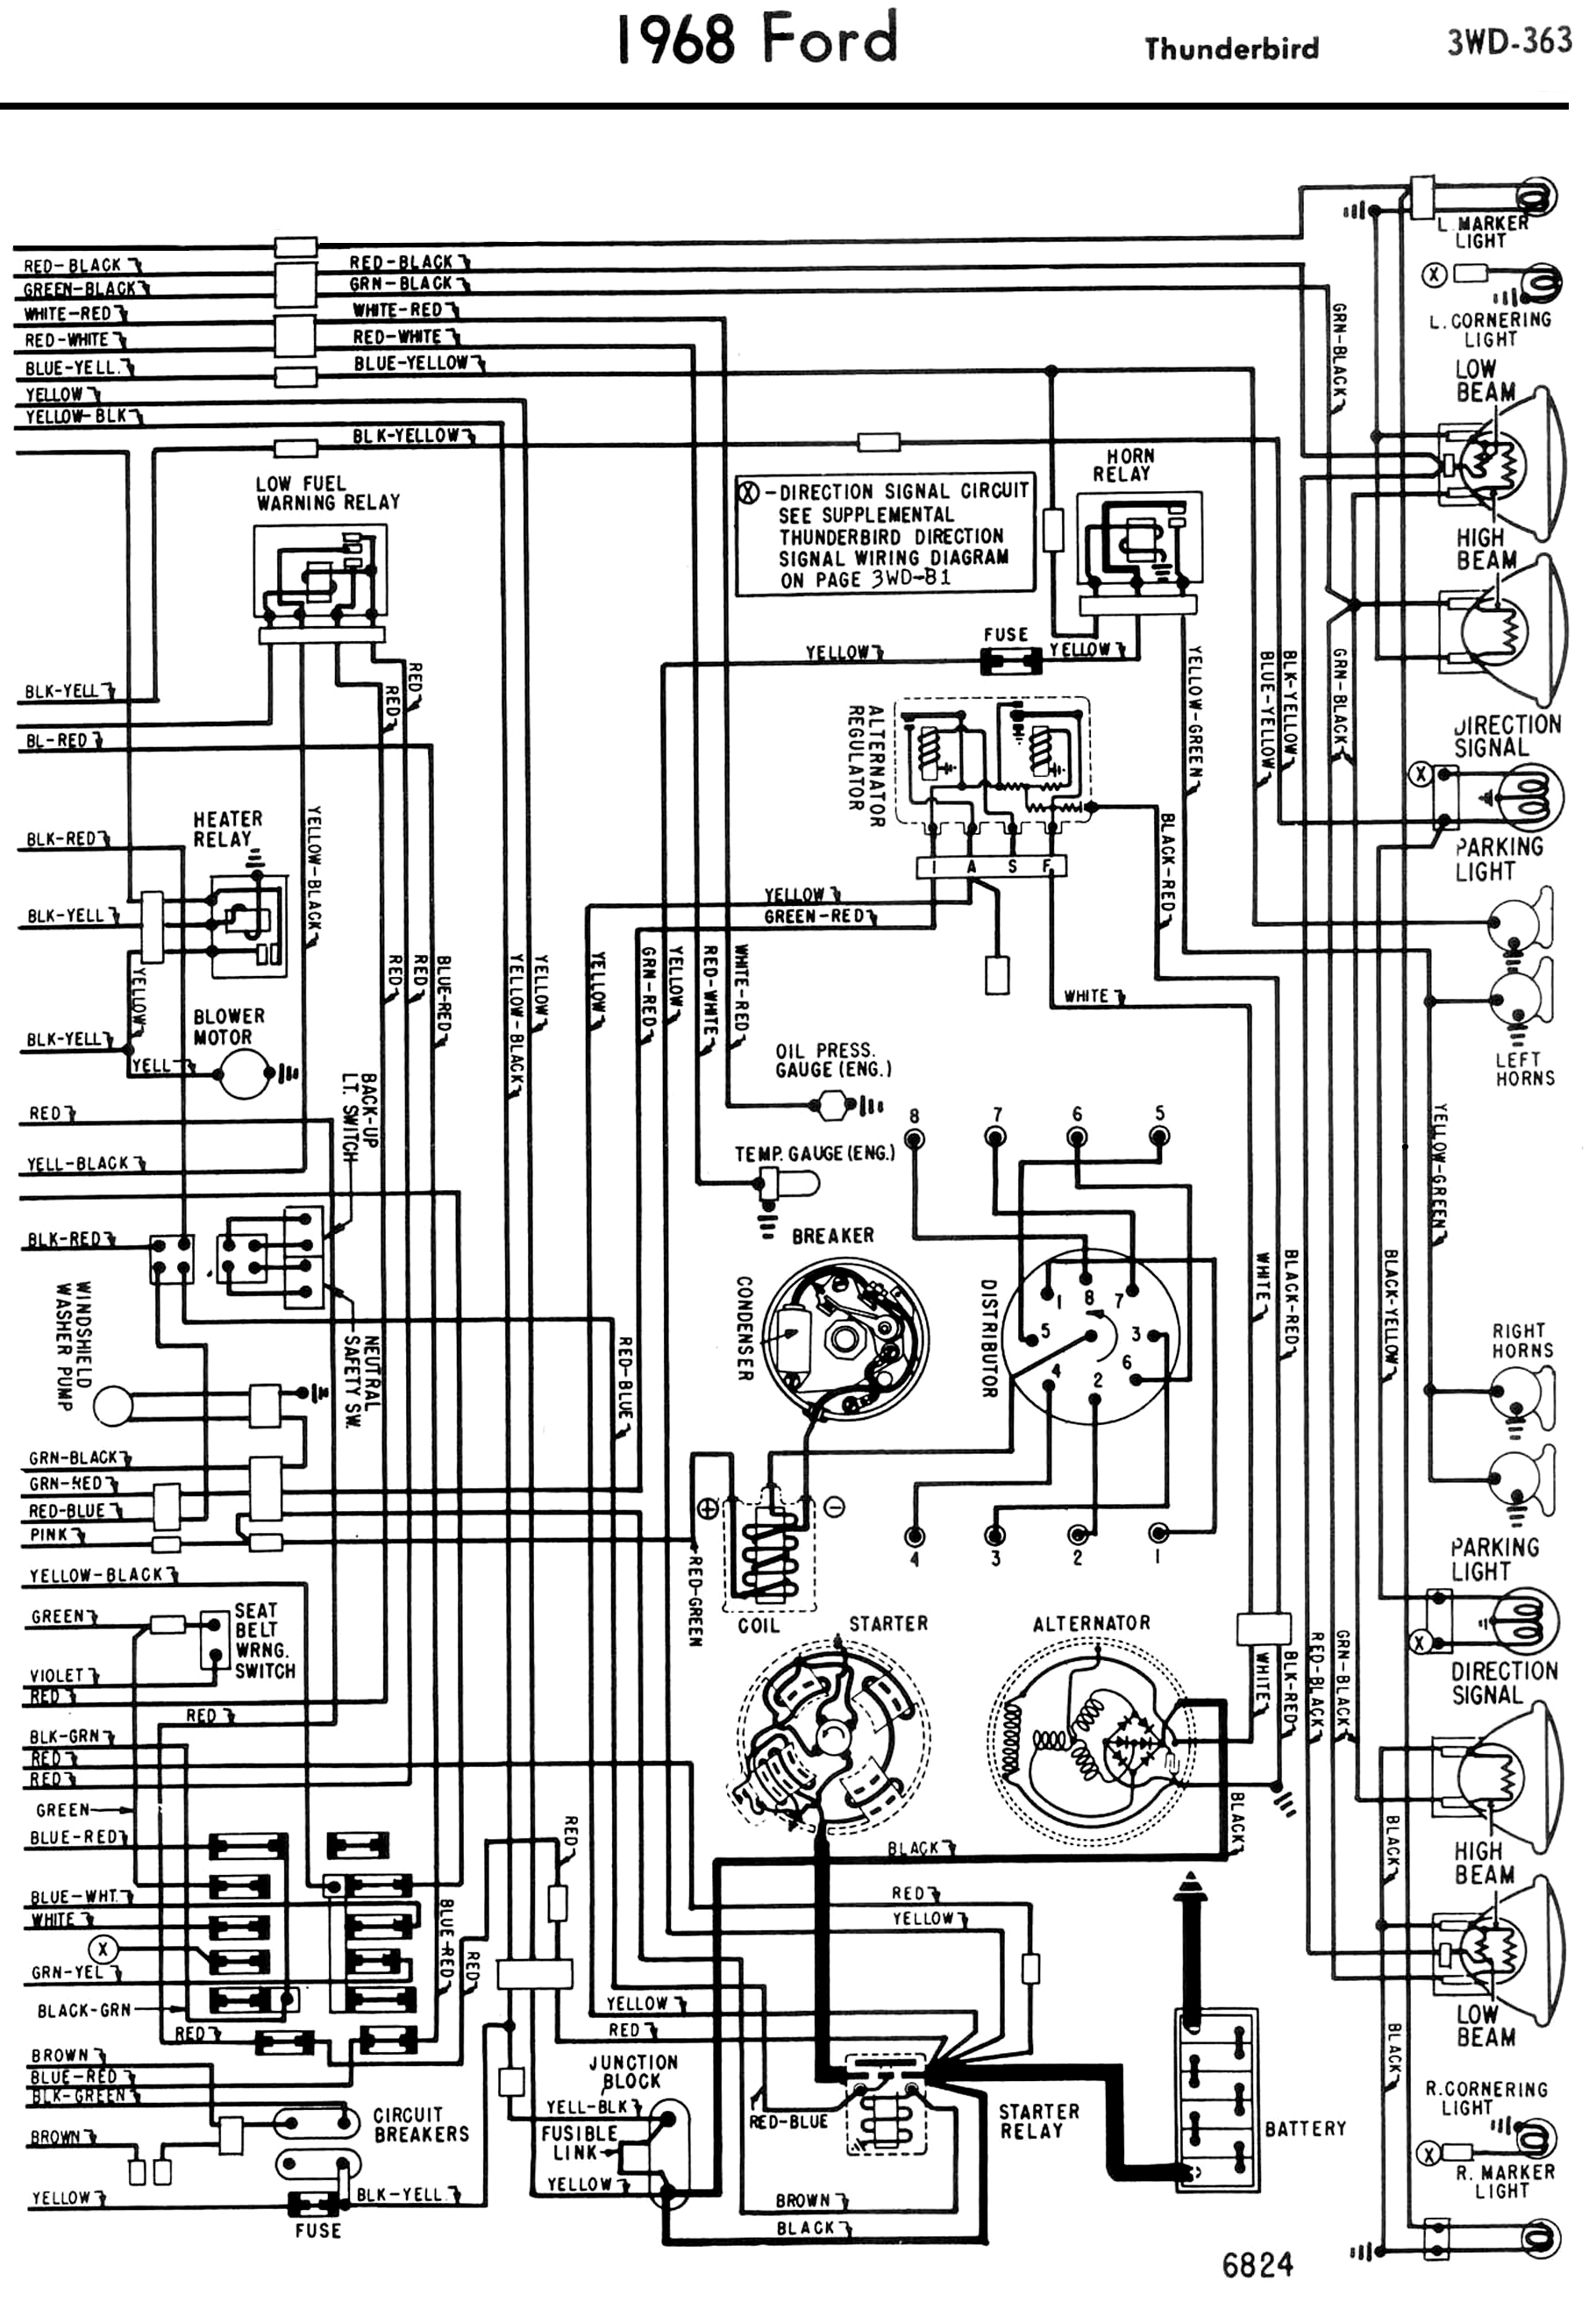 gka_519] 1990 ford thunderbird wiring diagram | switches-regard wiring  diagram value | switches-regard.iluoghicomunisullacultura.it  switches-regard.iluoghicomunisullacultura.it